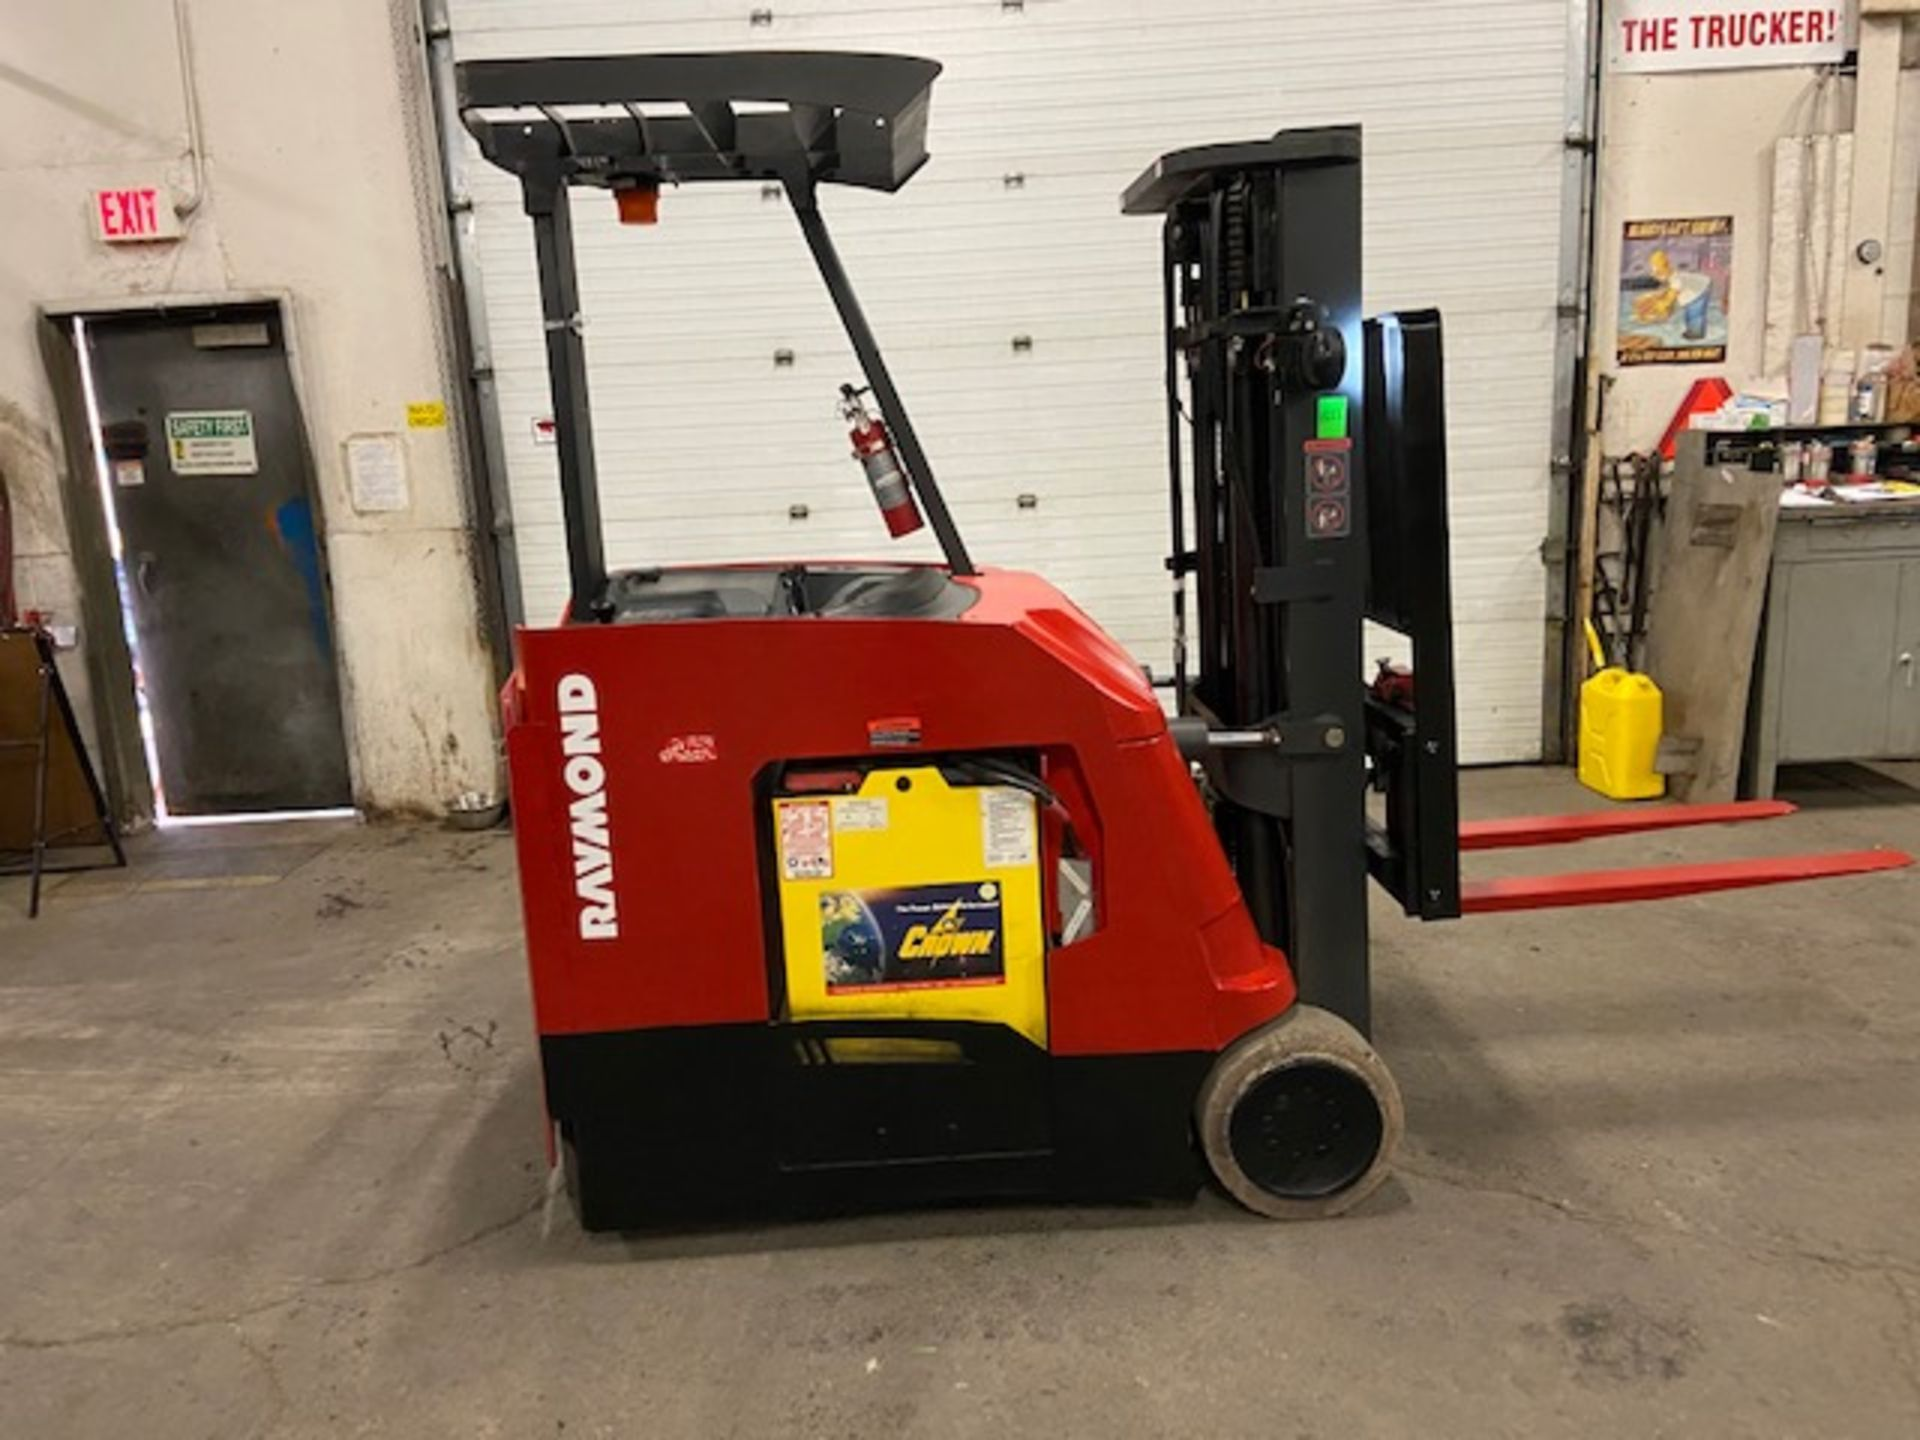 FREE CUSTOMS - 2014 Raymond 4000lbs Capacity Stand On Forklift Electric with 3-stage mast